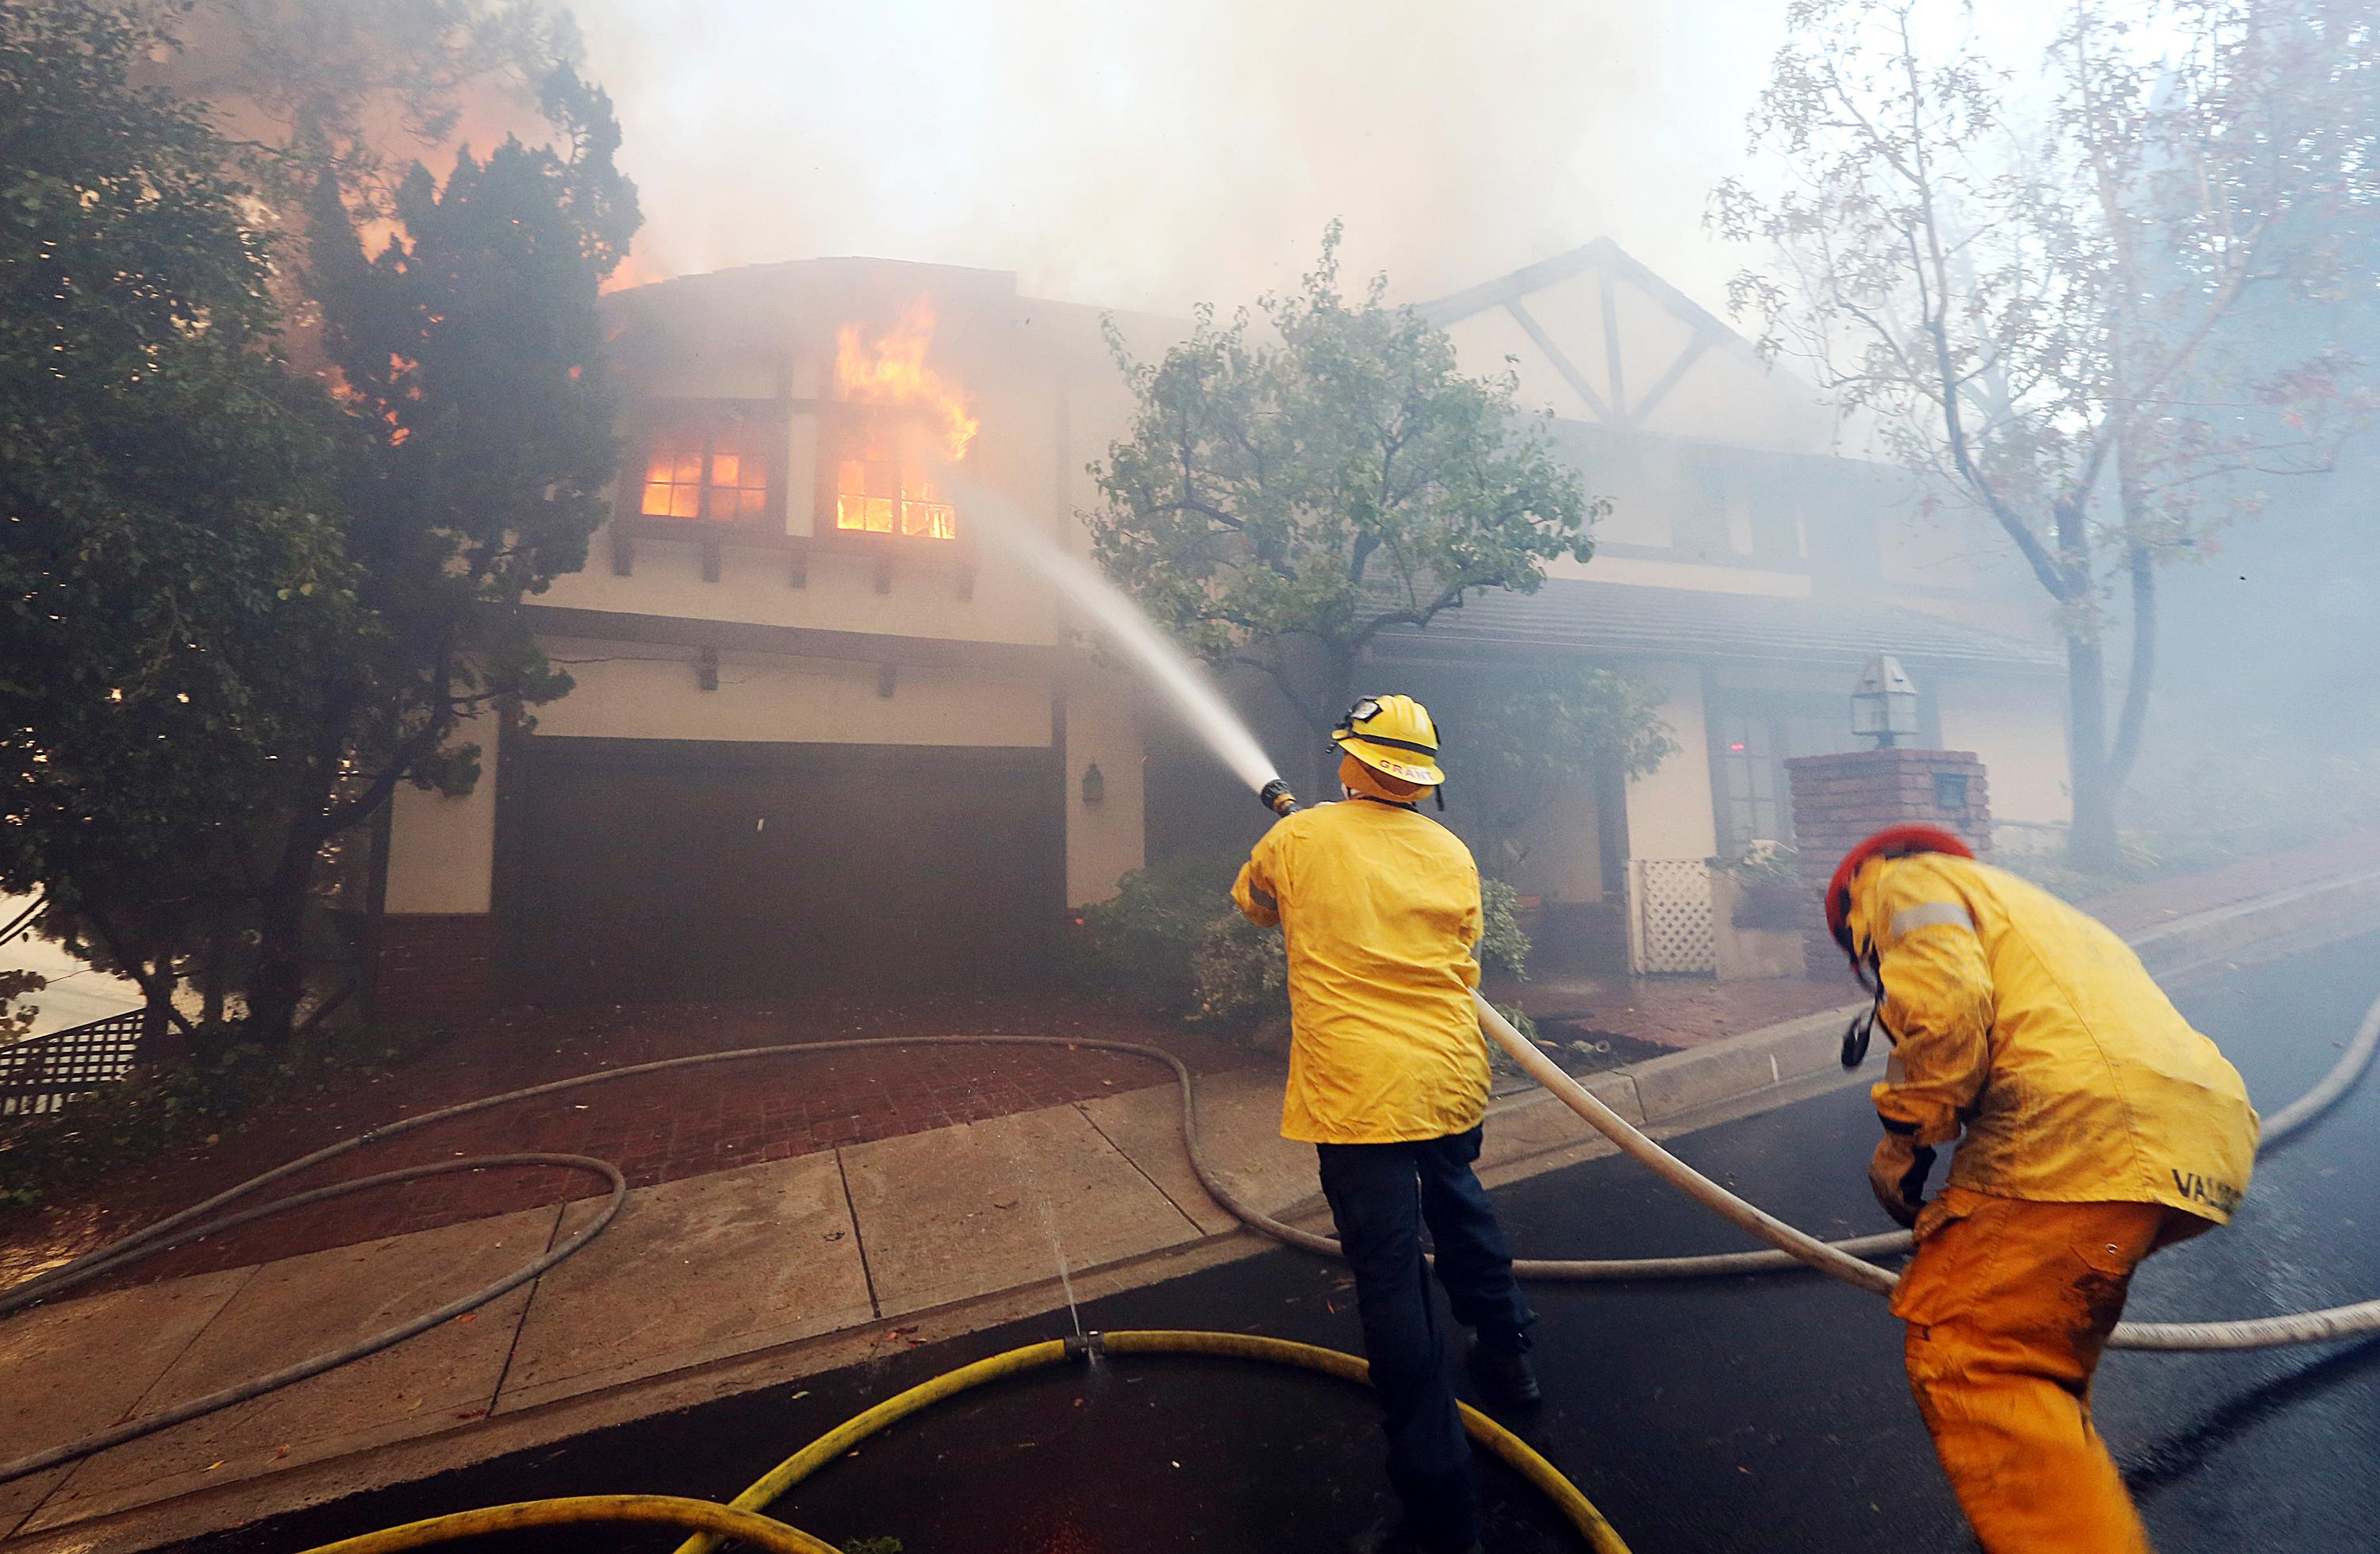 Los Angeles firefighters battle to contain flames to a burning home and prevent the fire's spread to adjoining properties in the Bel Air district of Los Angeles on Wednesday, Dec. 6, 2017. (AP Photo/Reed Saxon)